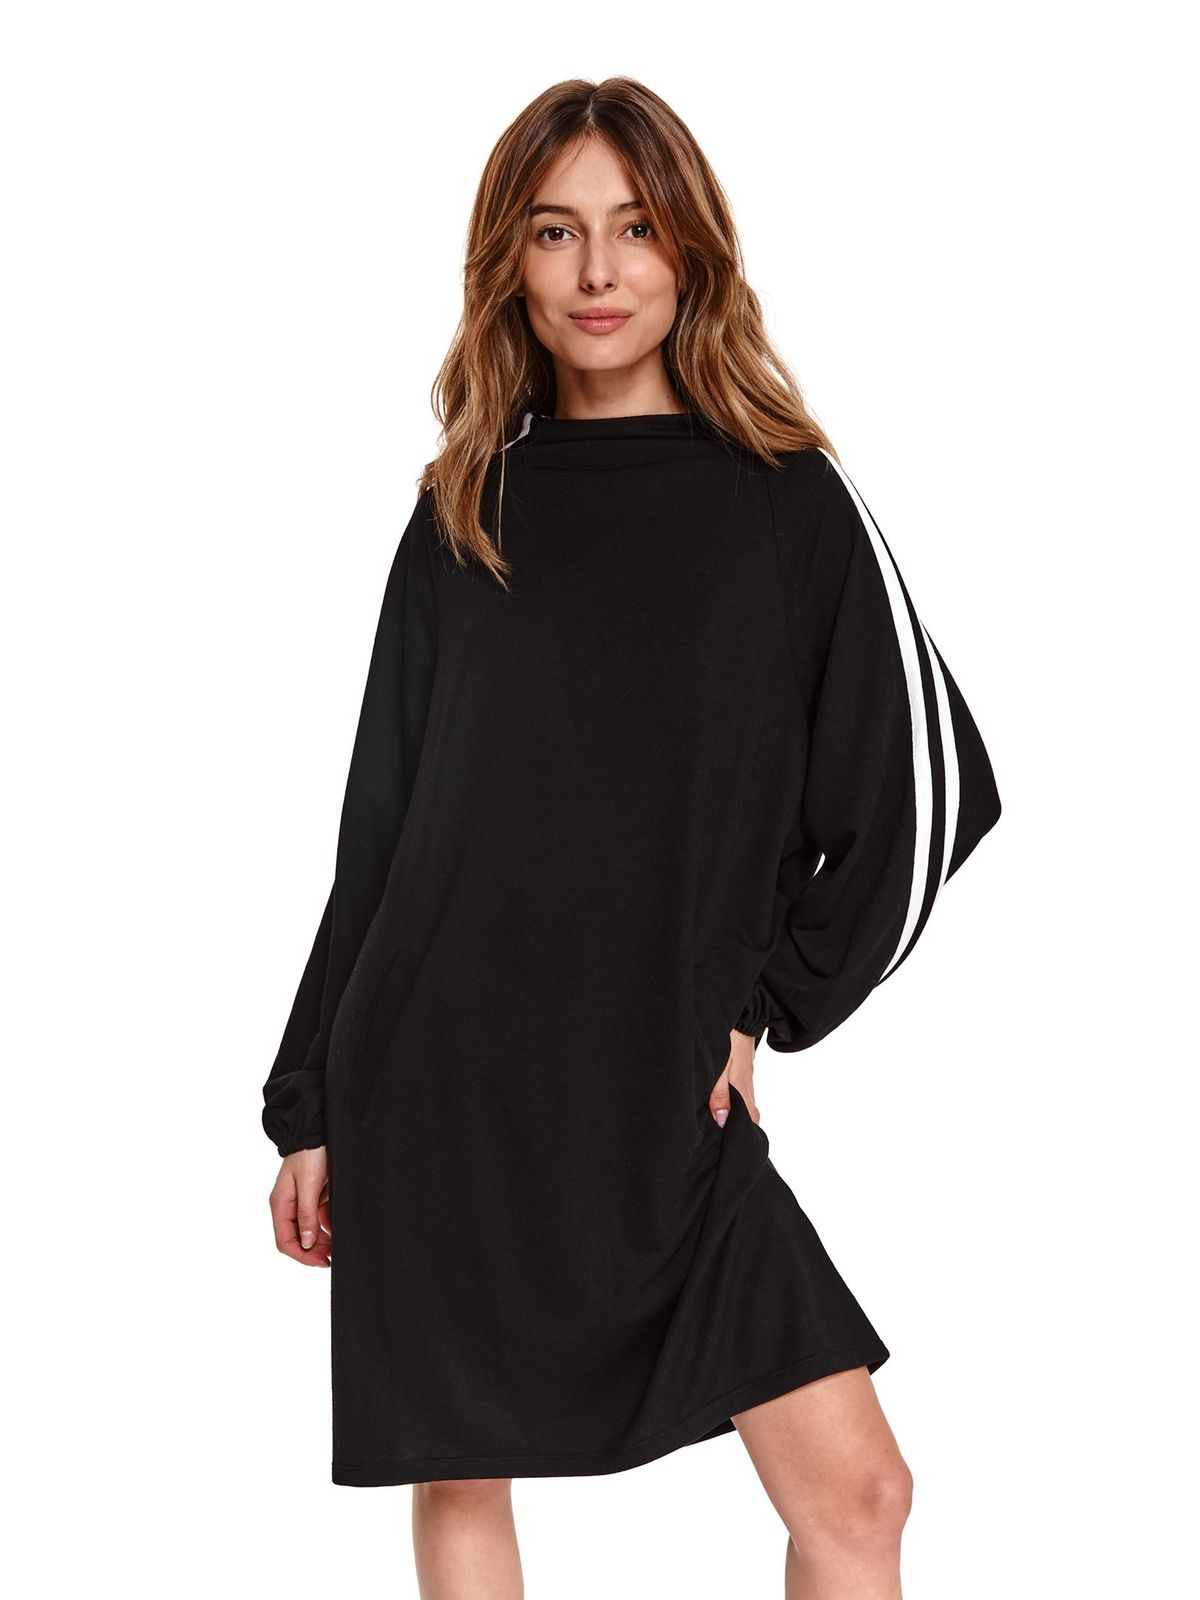 Black dress loose fit asymmetrical from elastic and fine fabric